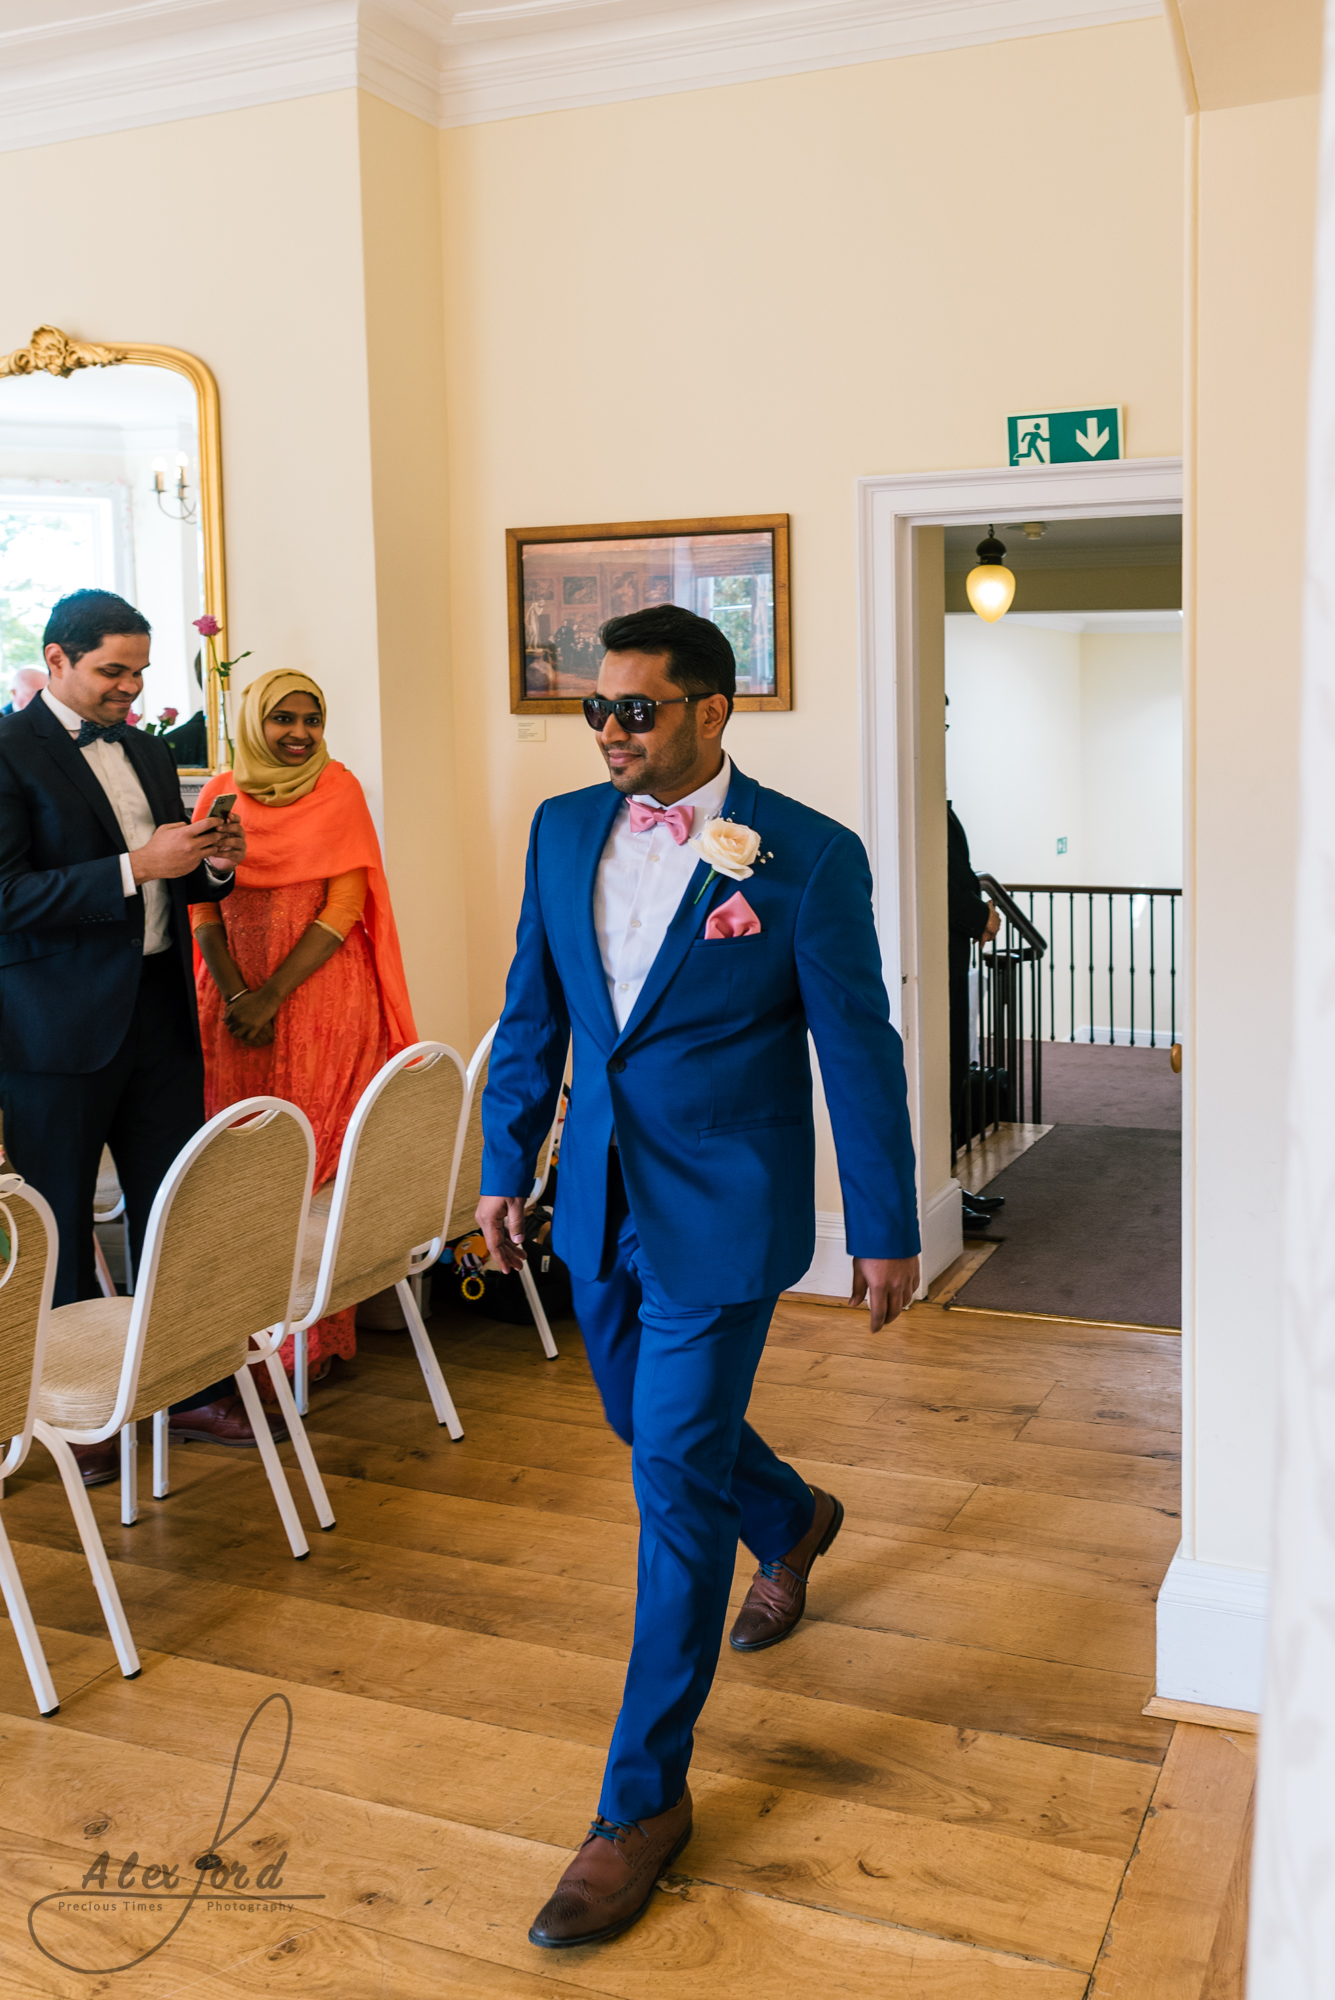 The best man makes an entrance into the wedding ceremony wearing a blue suit and sunglasses